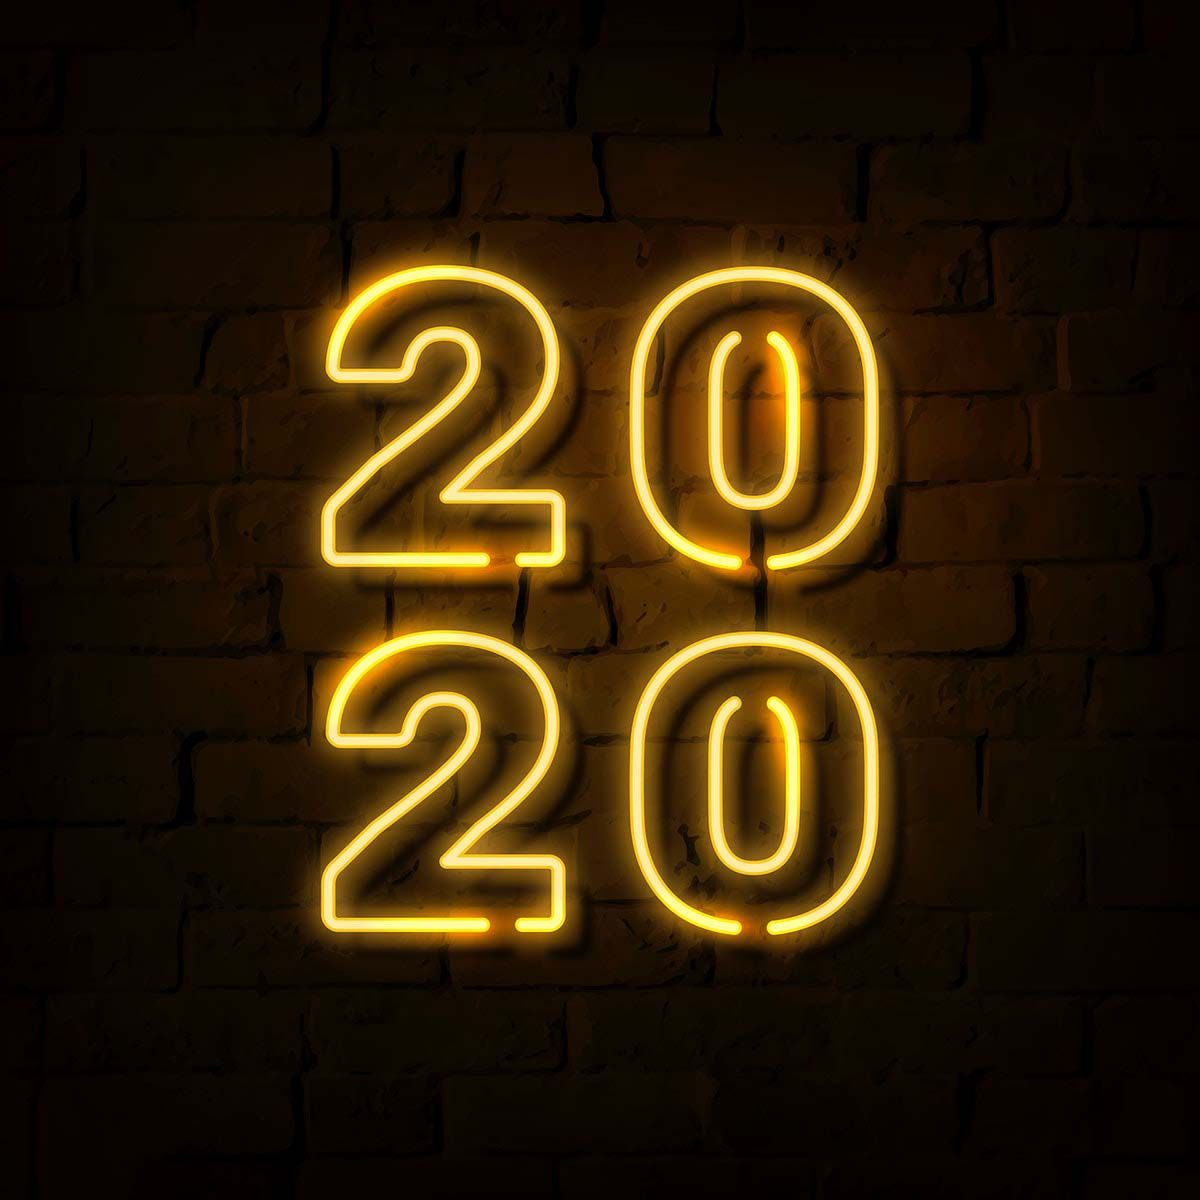 Happy New Year Images 2020 & Wallpapers Social ads, Neon